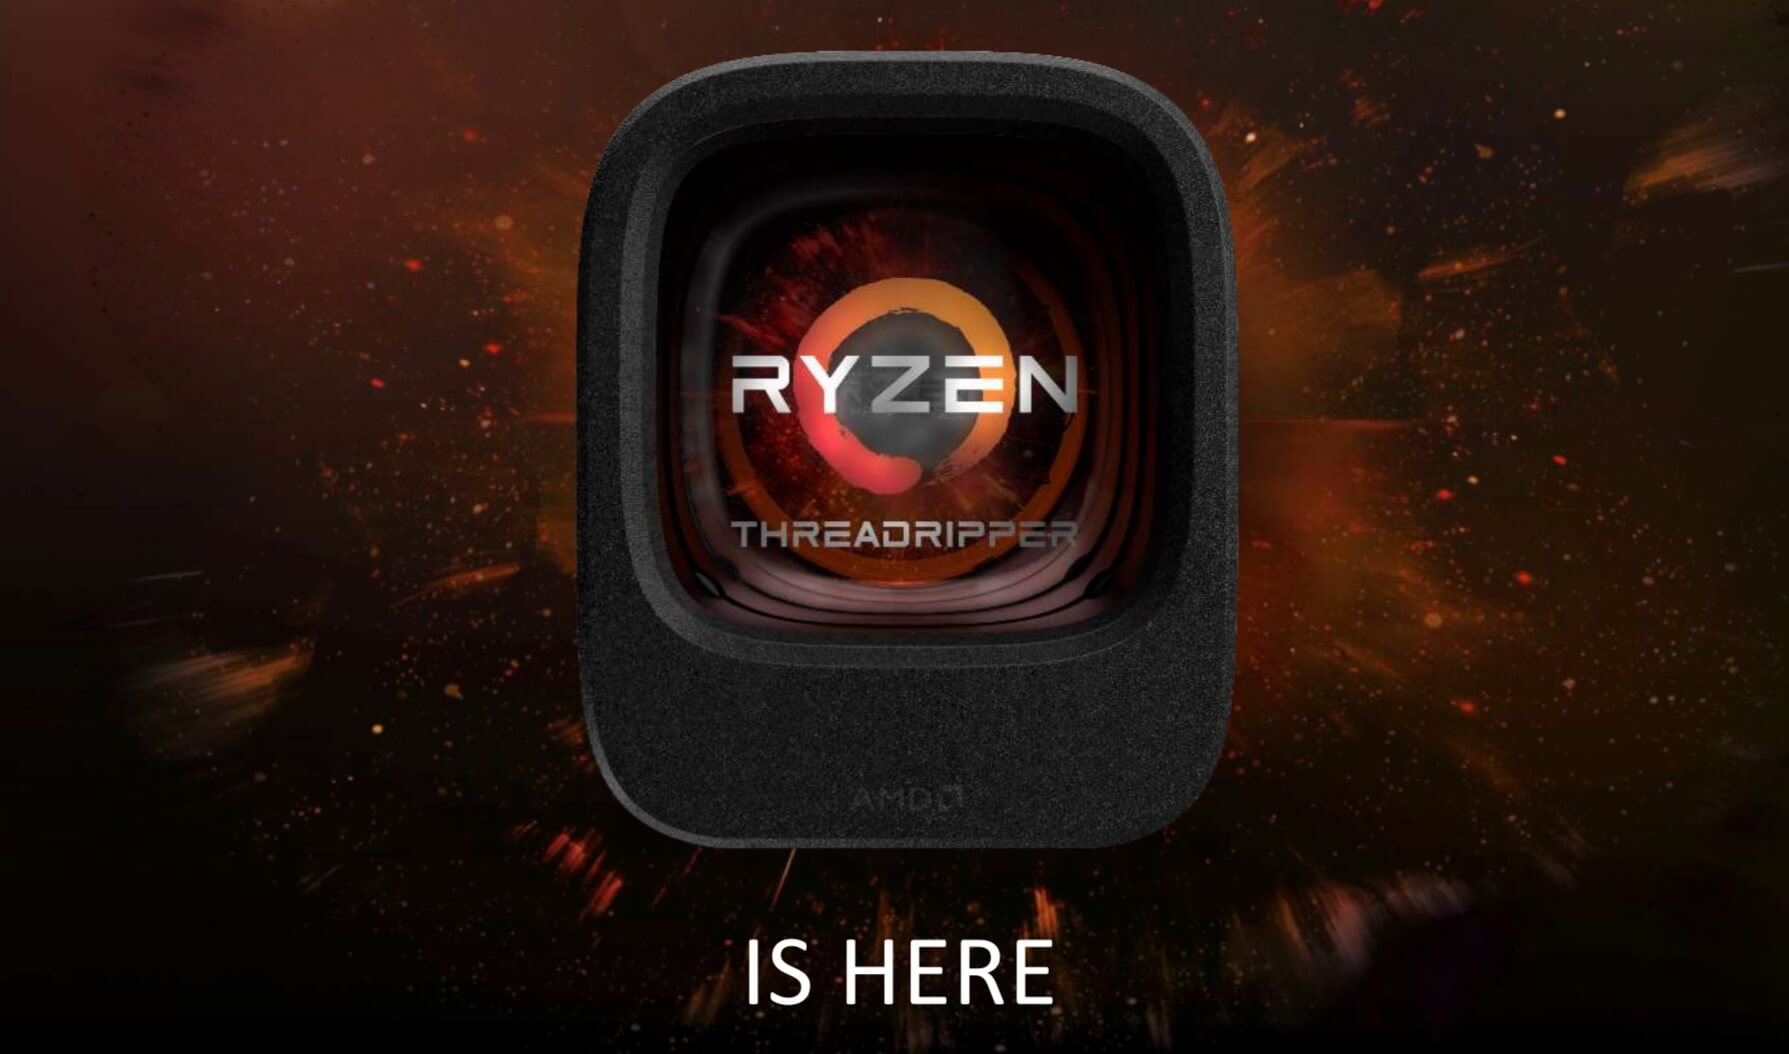 Ryzen Threadripper benchmark preview, our full review is coming August 10